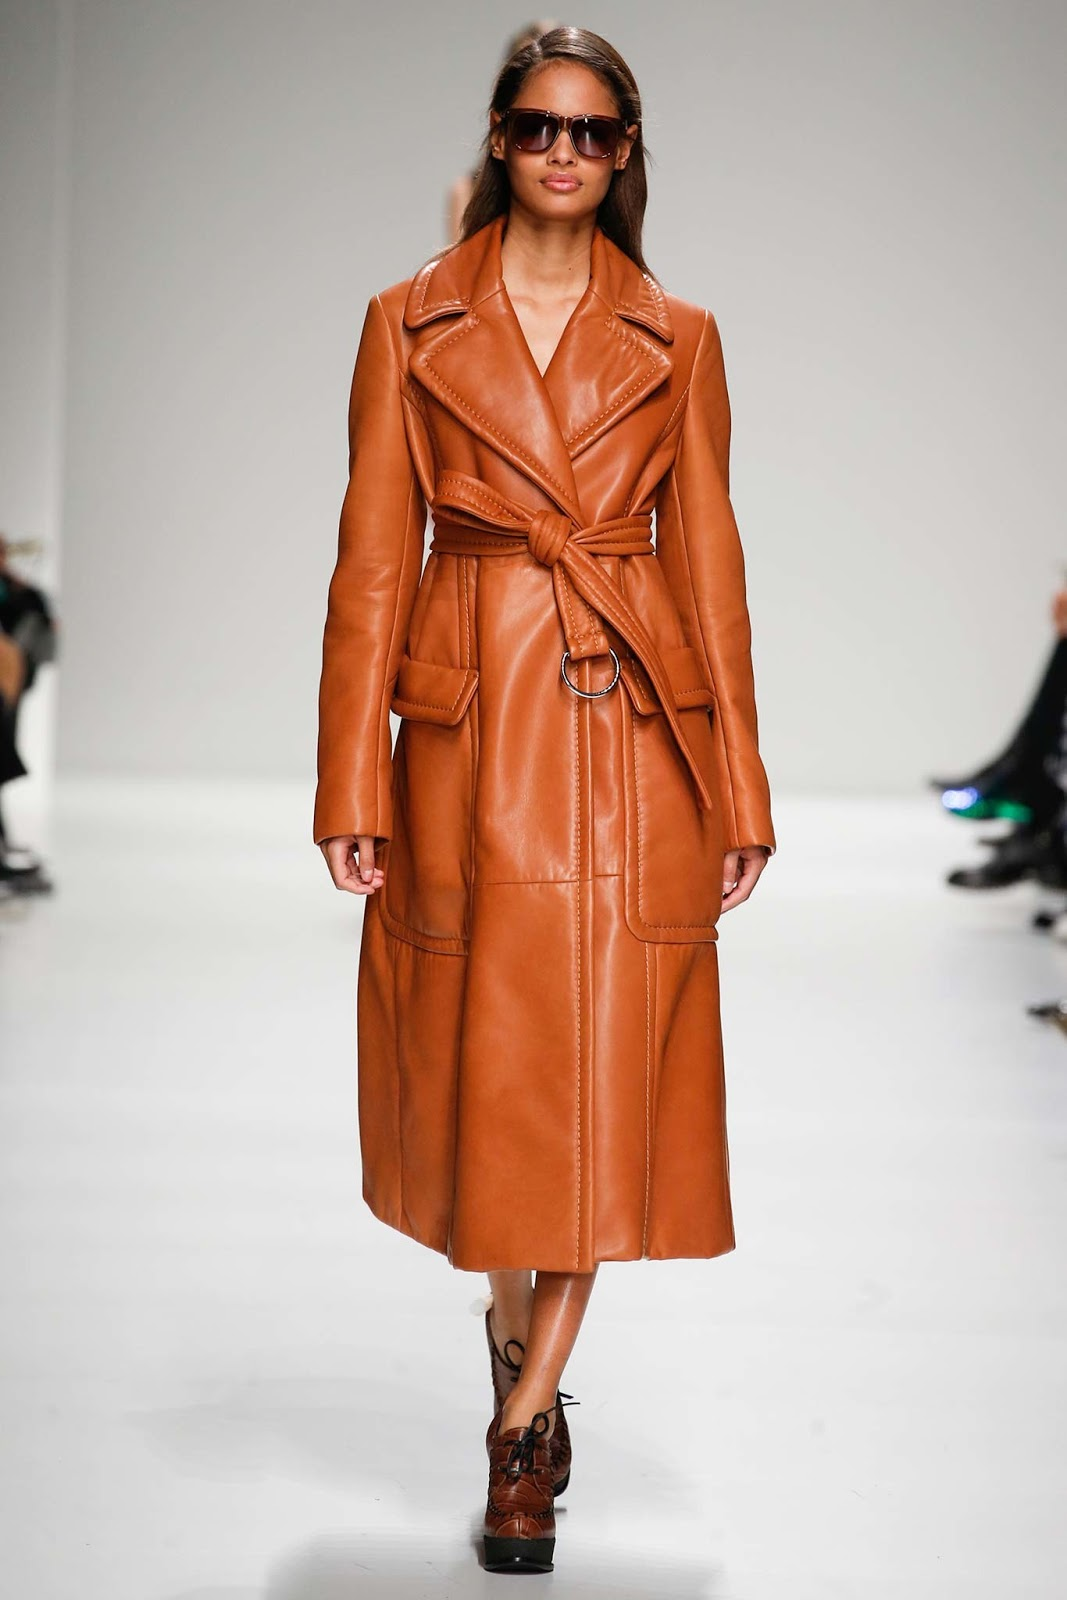 Trench coats as seen on a runway at Sportmax Autumn/Winter 2015 via www.fashionedbylove.co.uk